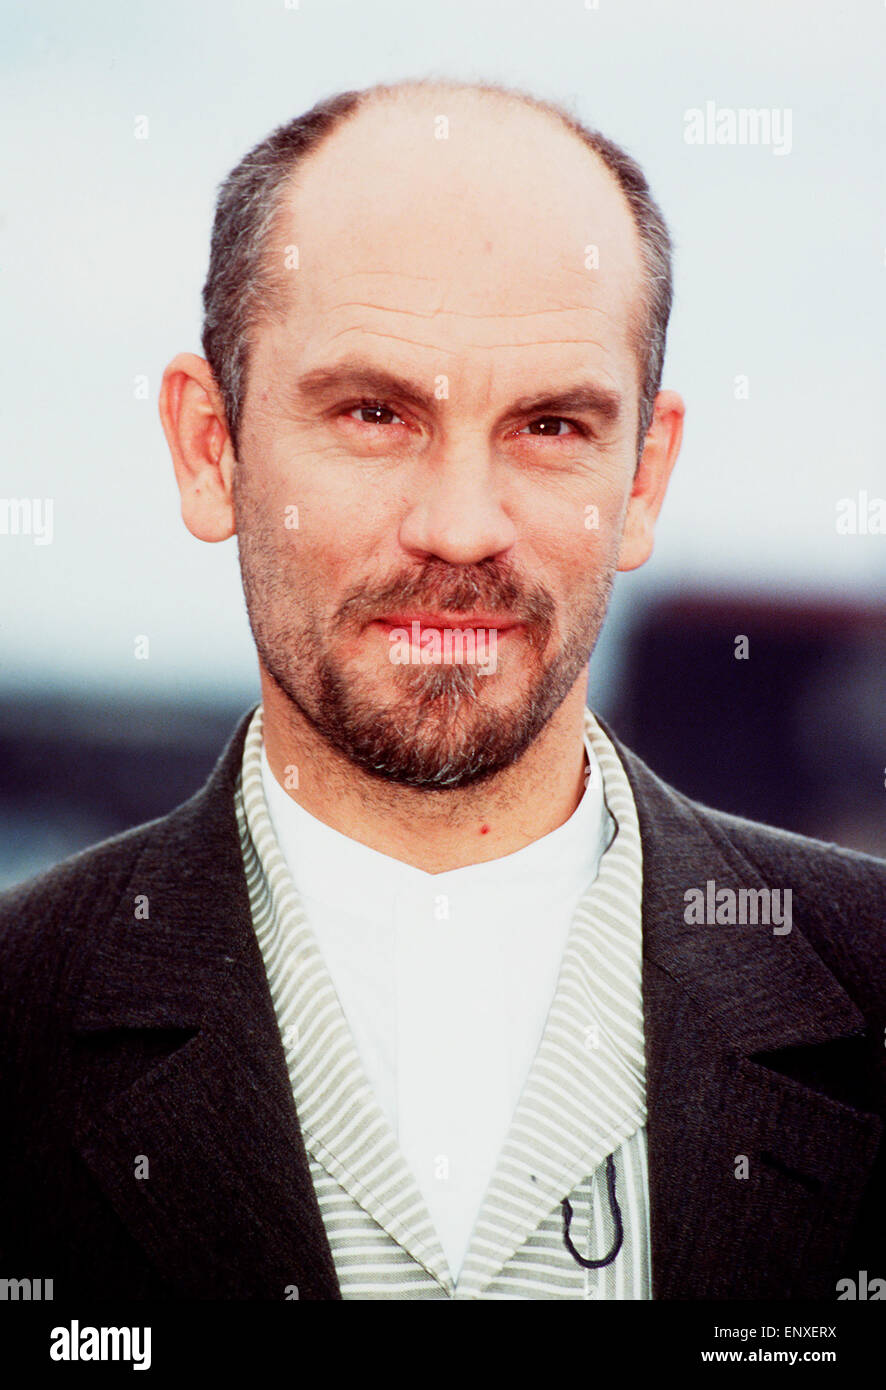 der amerikanische schauspieler john malkovich portrait 1990er stock photo royalty free image. Black Bedroom Furniture Sets. Home Design Ideas